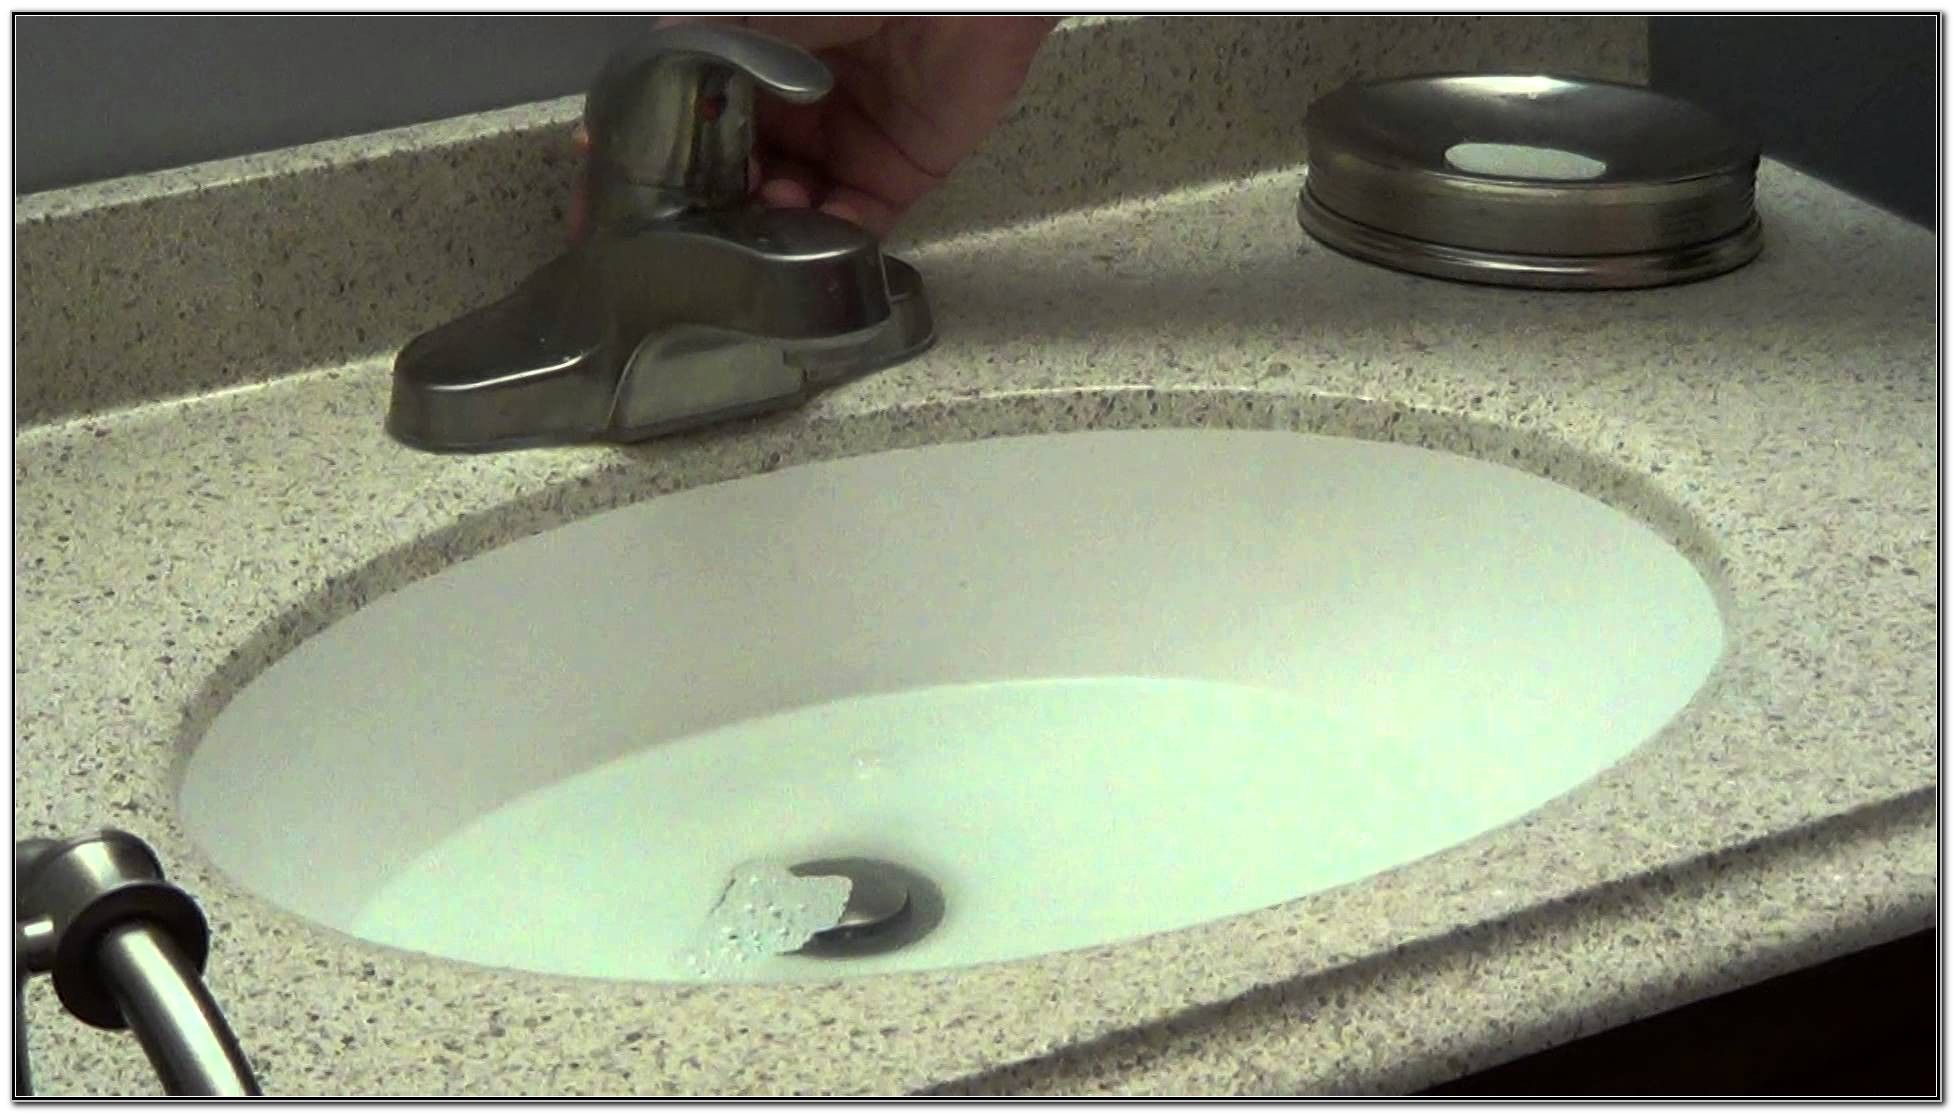 Clogged Bathroom Sink Drain Standing Water Sink And Faucets Home Decorating Ideas Nnv8dglva9 Bathroom Sink Drain Clogged Sink Bathroom Bathroom Sink